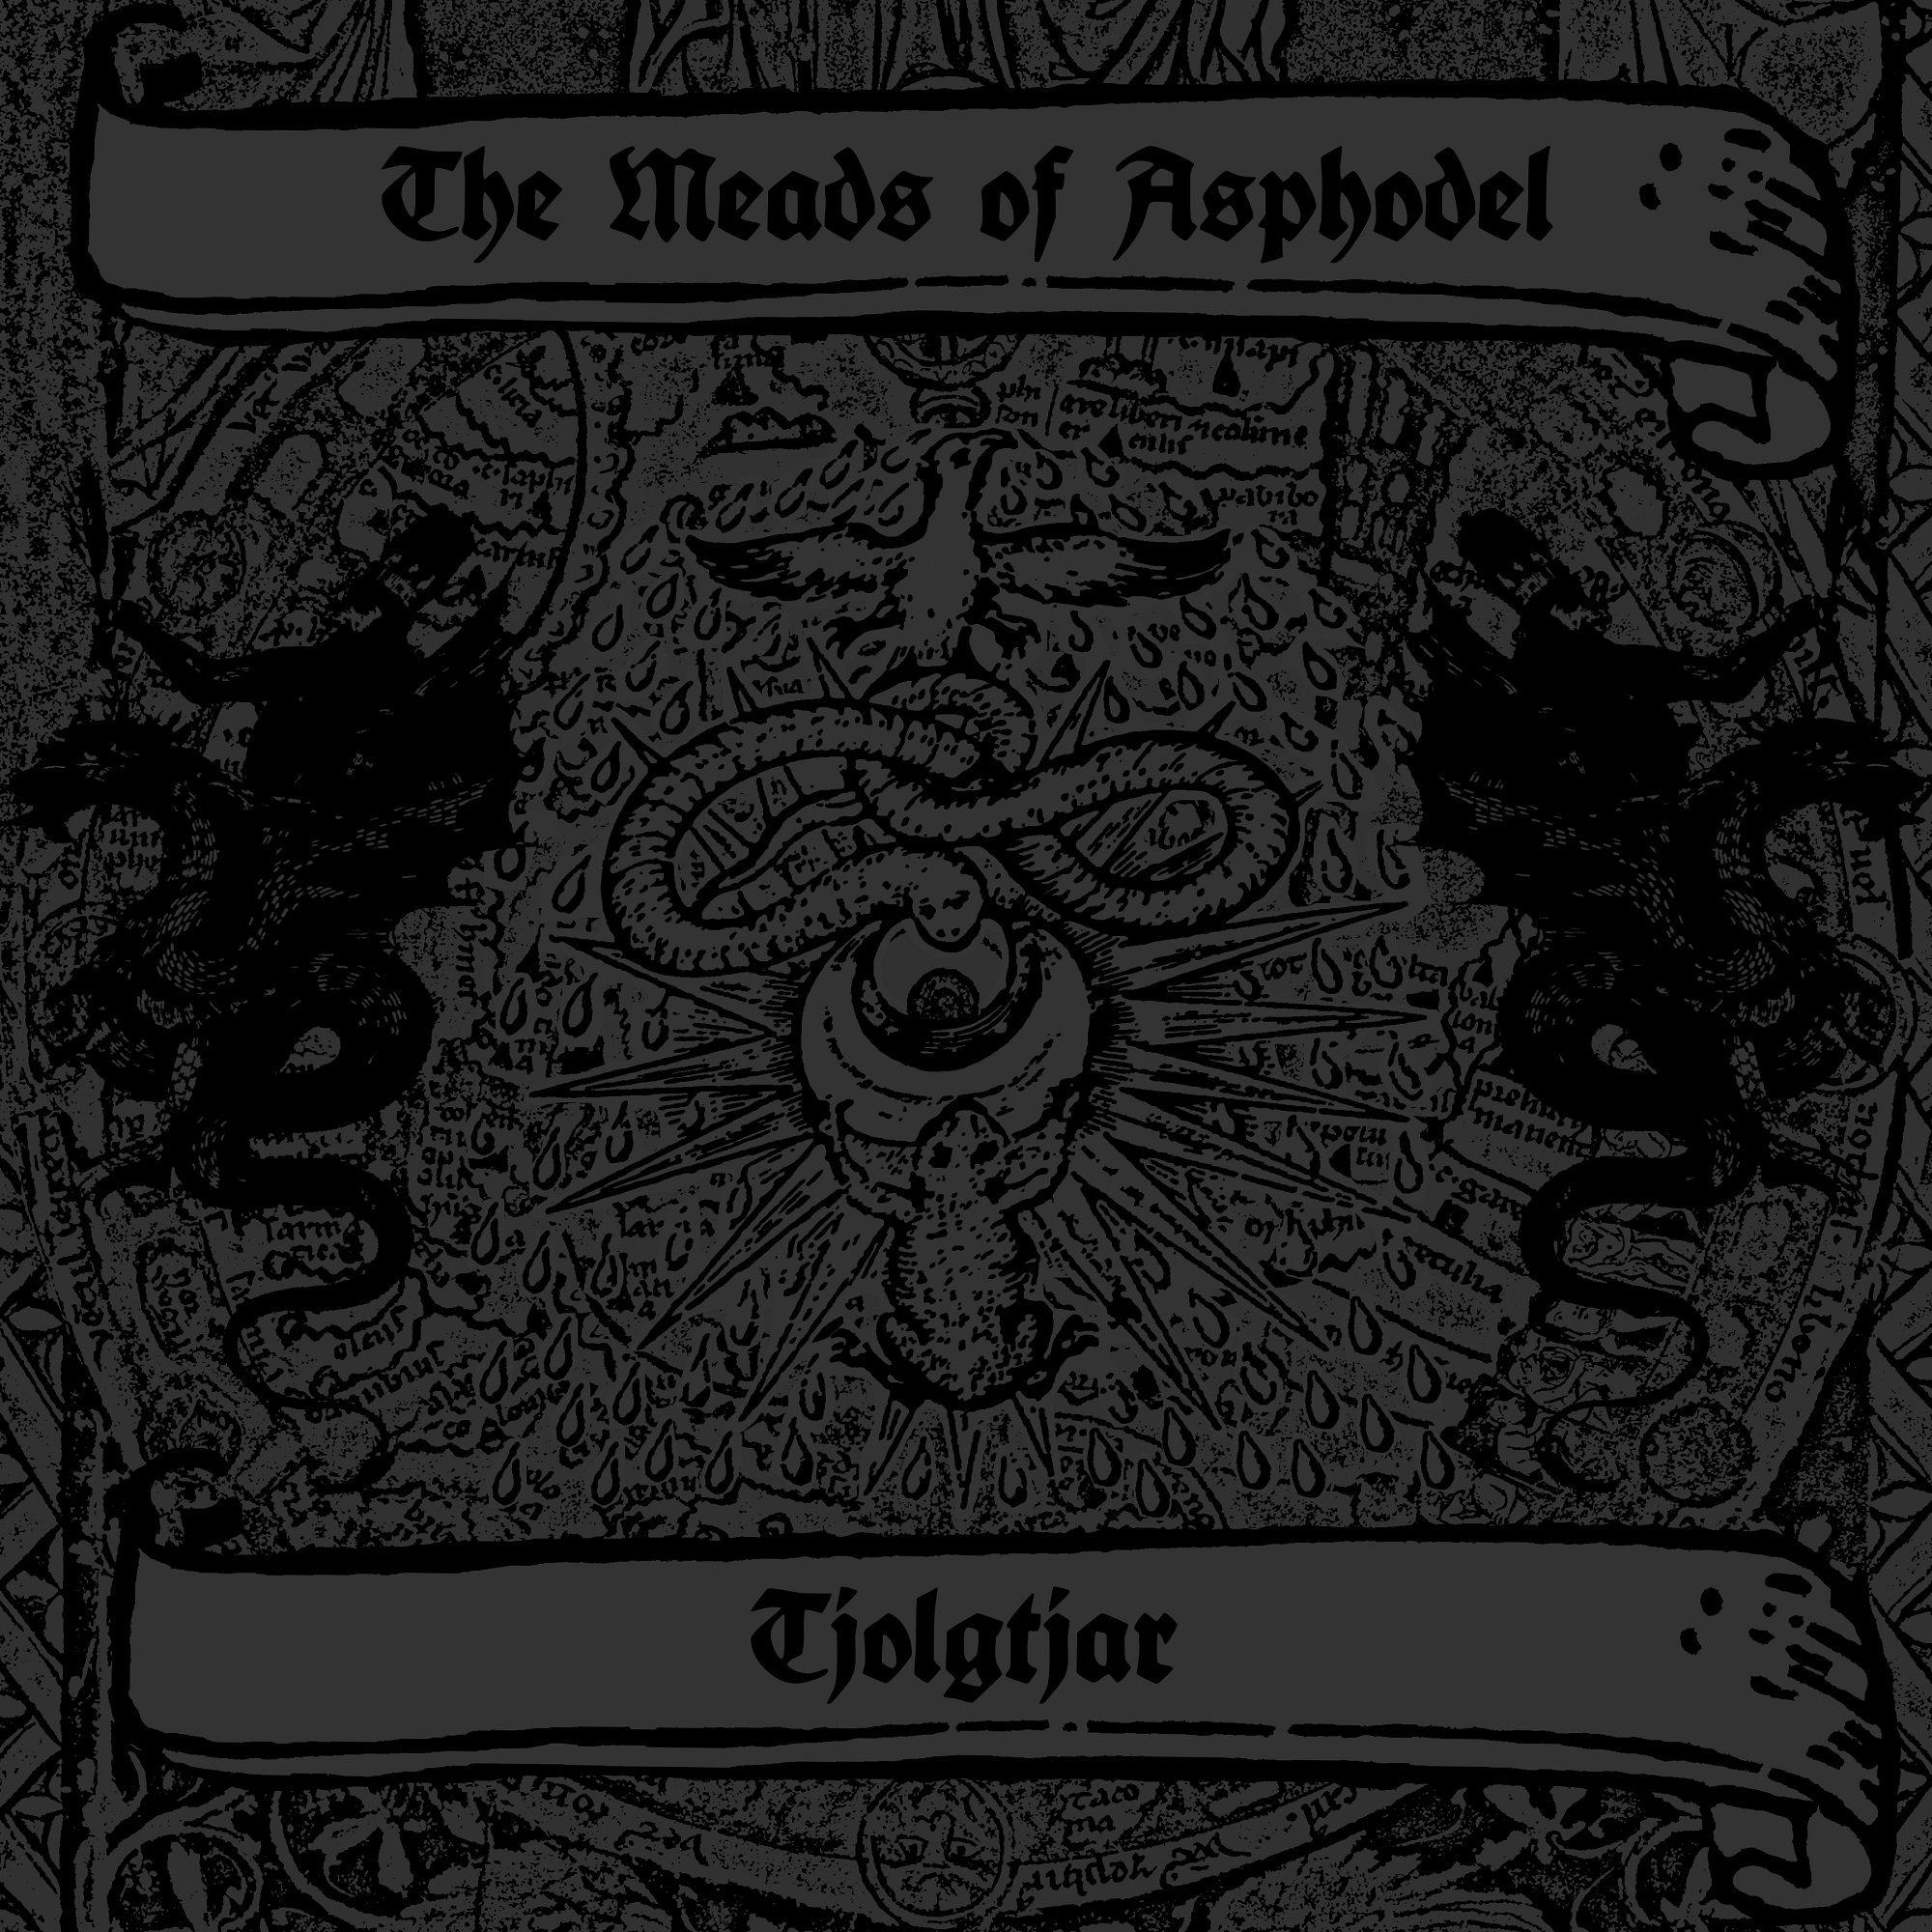 The Meads of Asphodel/Tjolgtjar – Taste the Divine Wrath Review